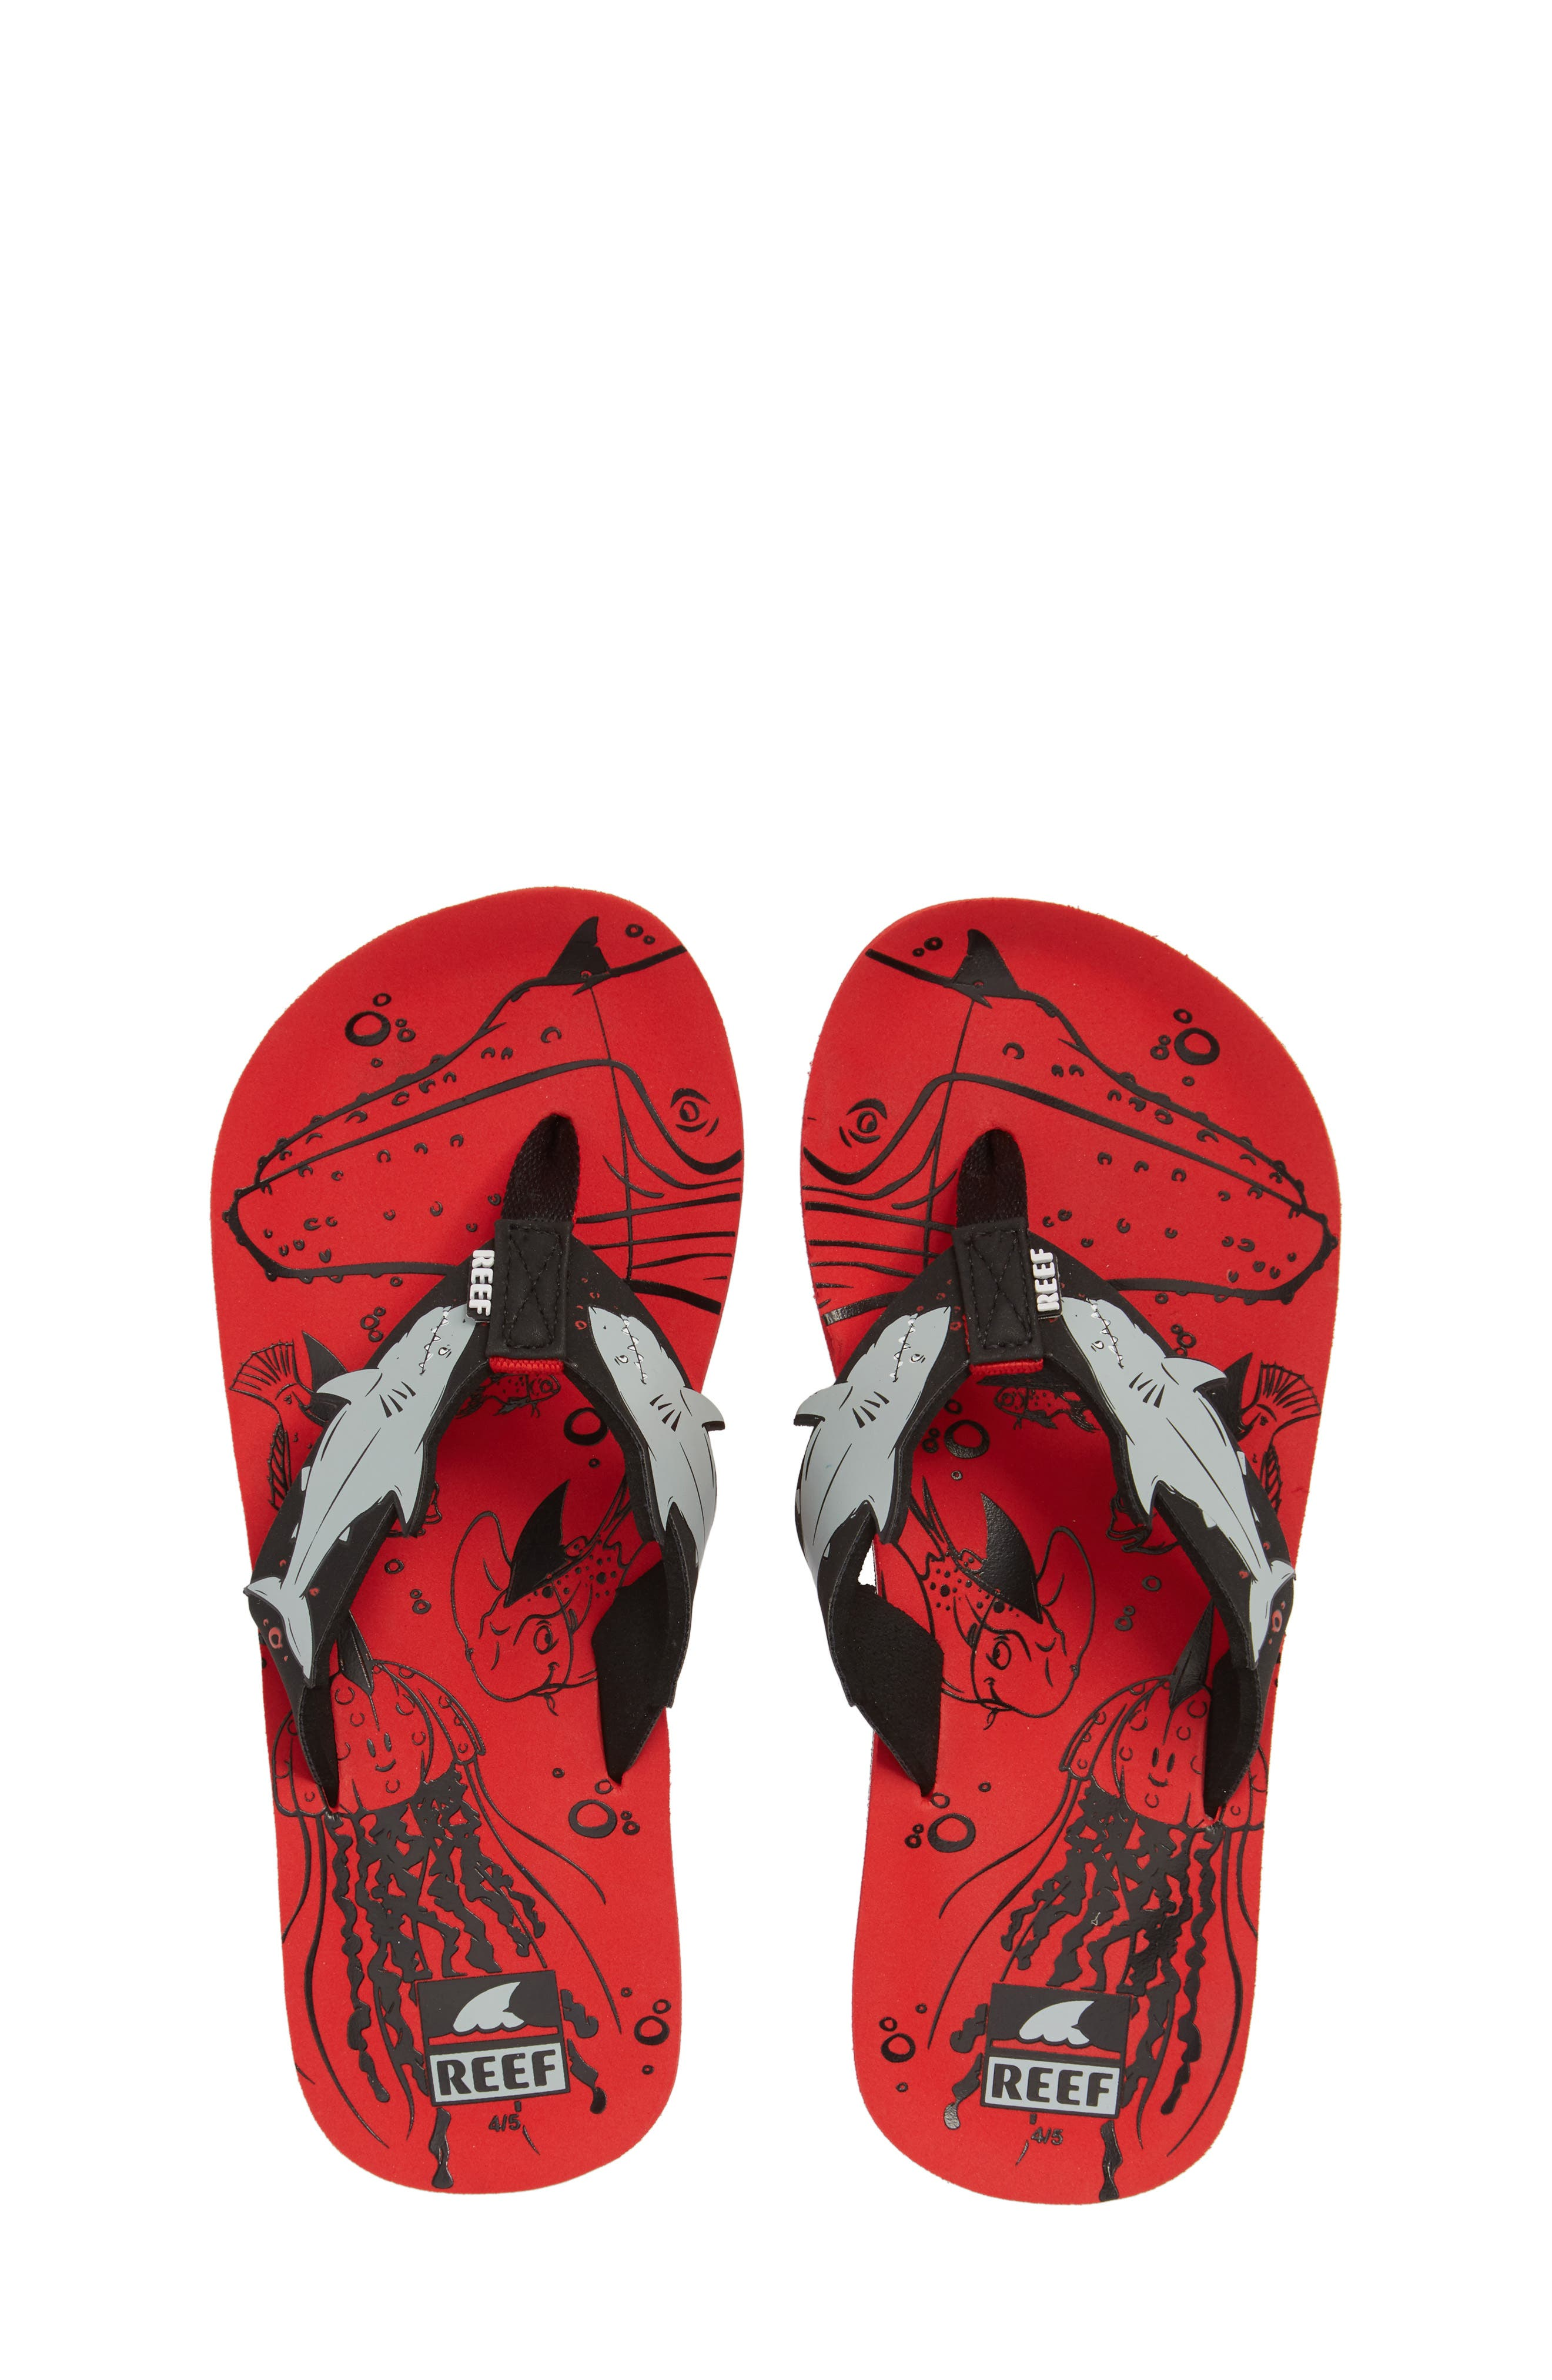 Ahi Shark Flip Flop,                             Main thumbnail 1, color,                             RED SHARK